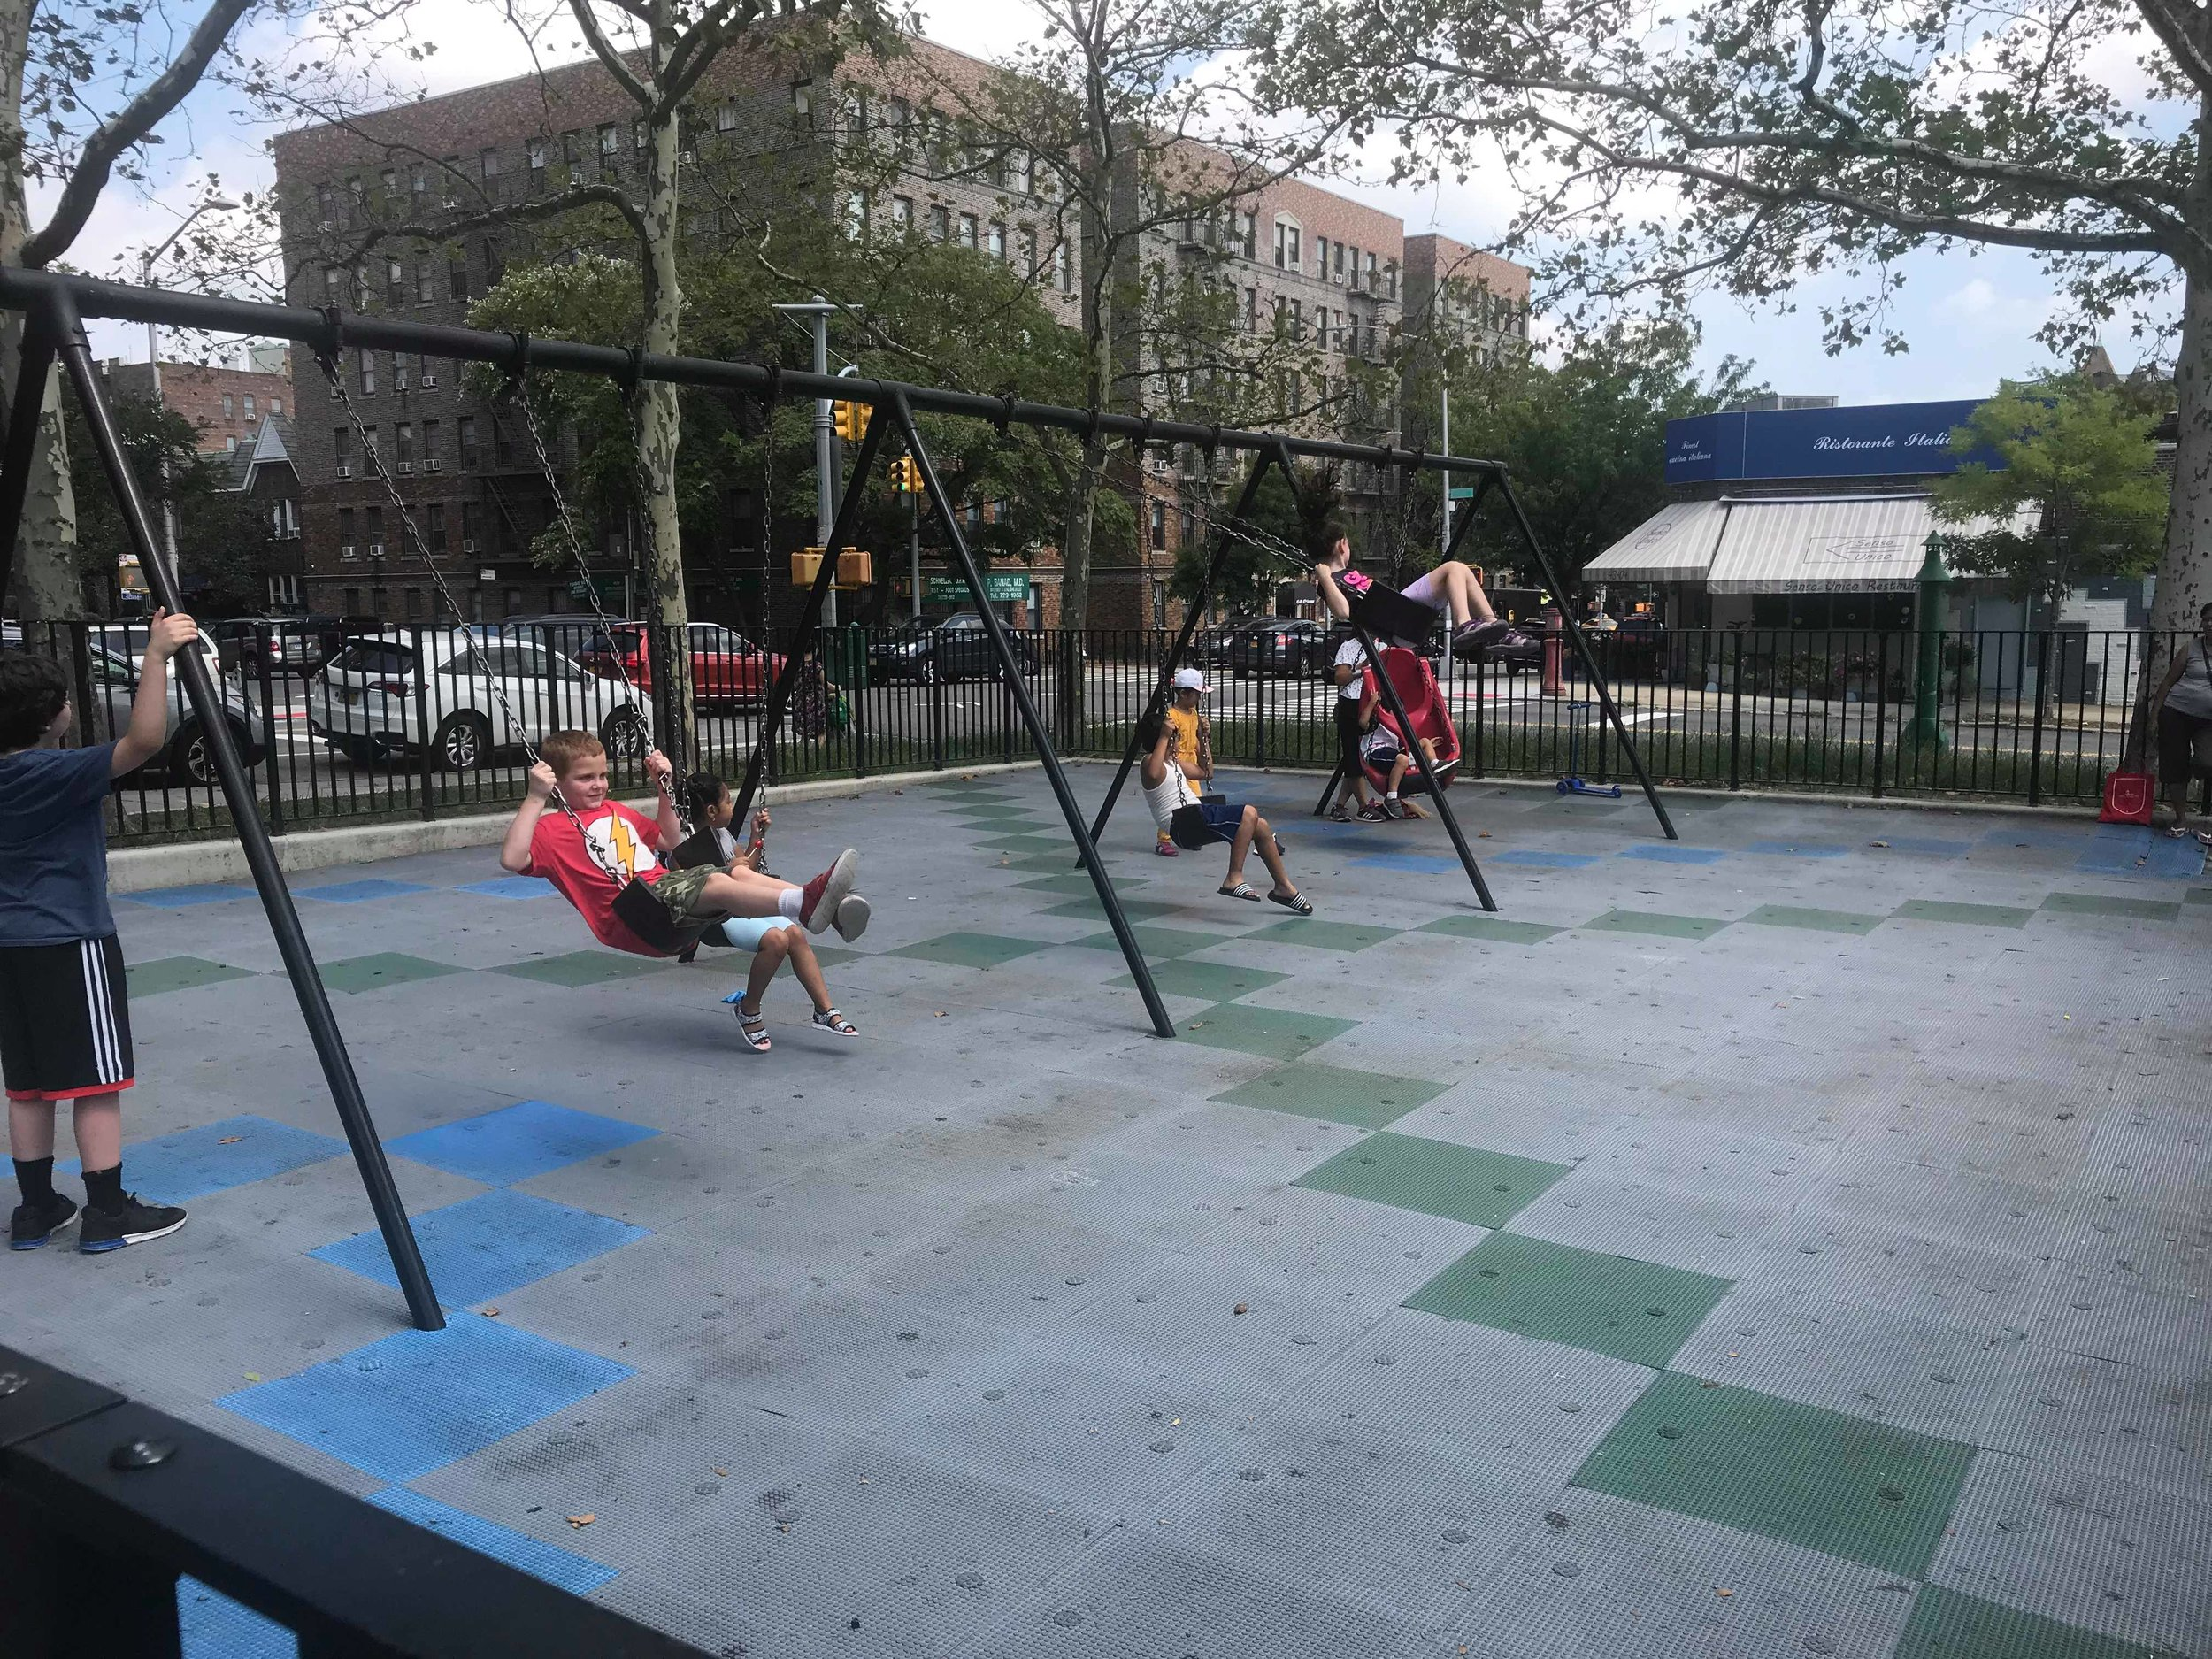 Children swing at the Thomas P. Noonan Jr. Playground near P.S. 150 in Sunnyside on Wednesday, the day before the new school year began.  Eagle  photo by Amanda Glodowski.